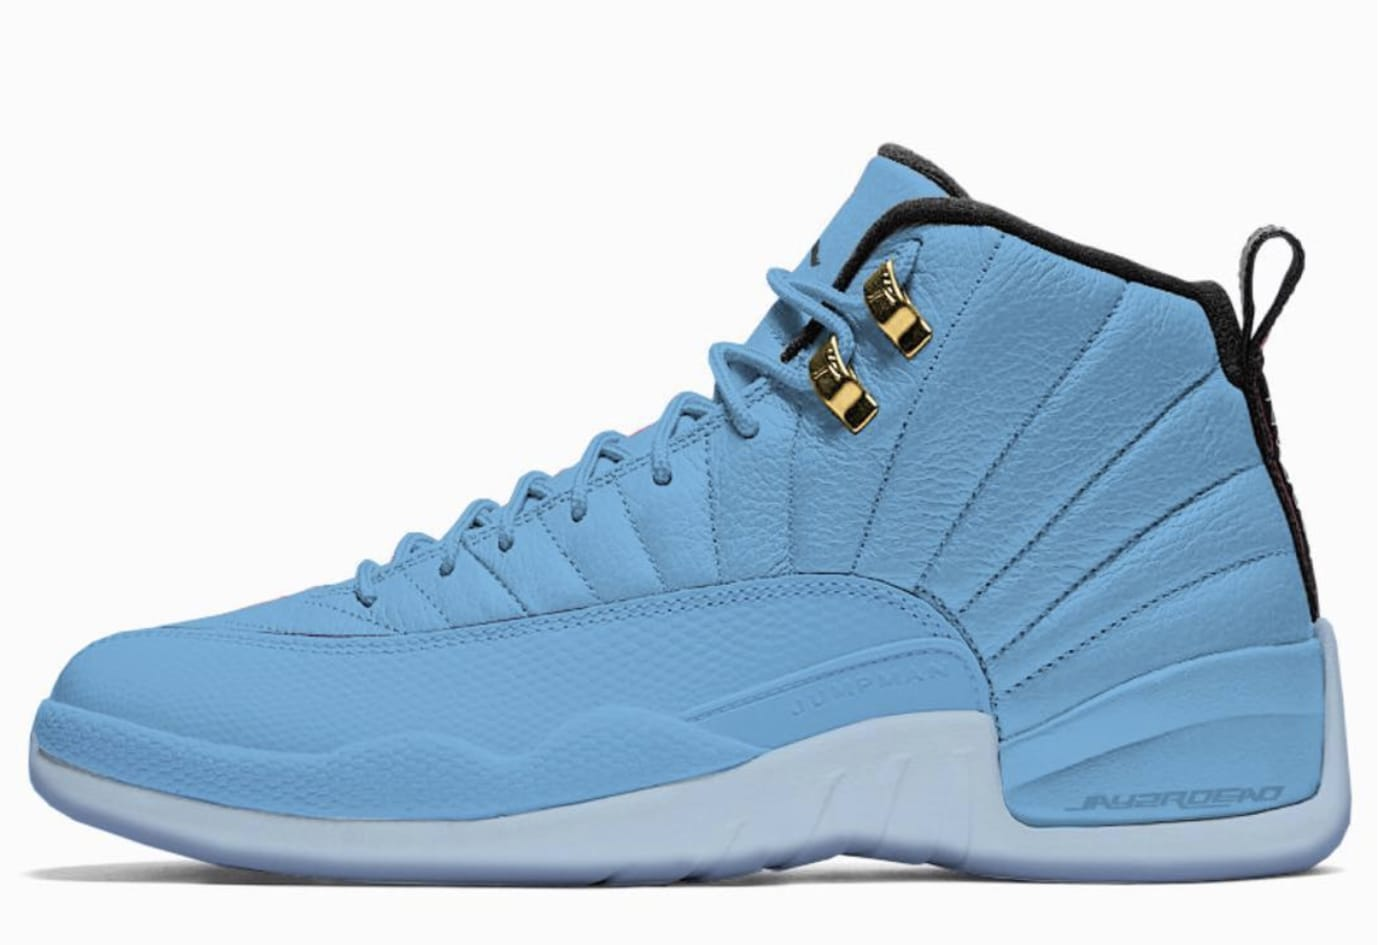 Air Jordan 12 University Blue/Metallic Gold-Black 130690-430